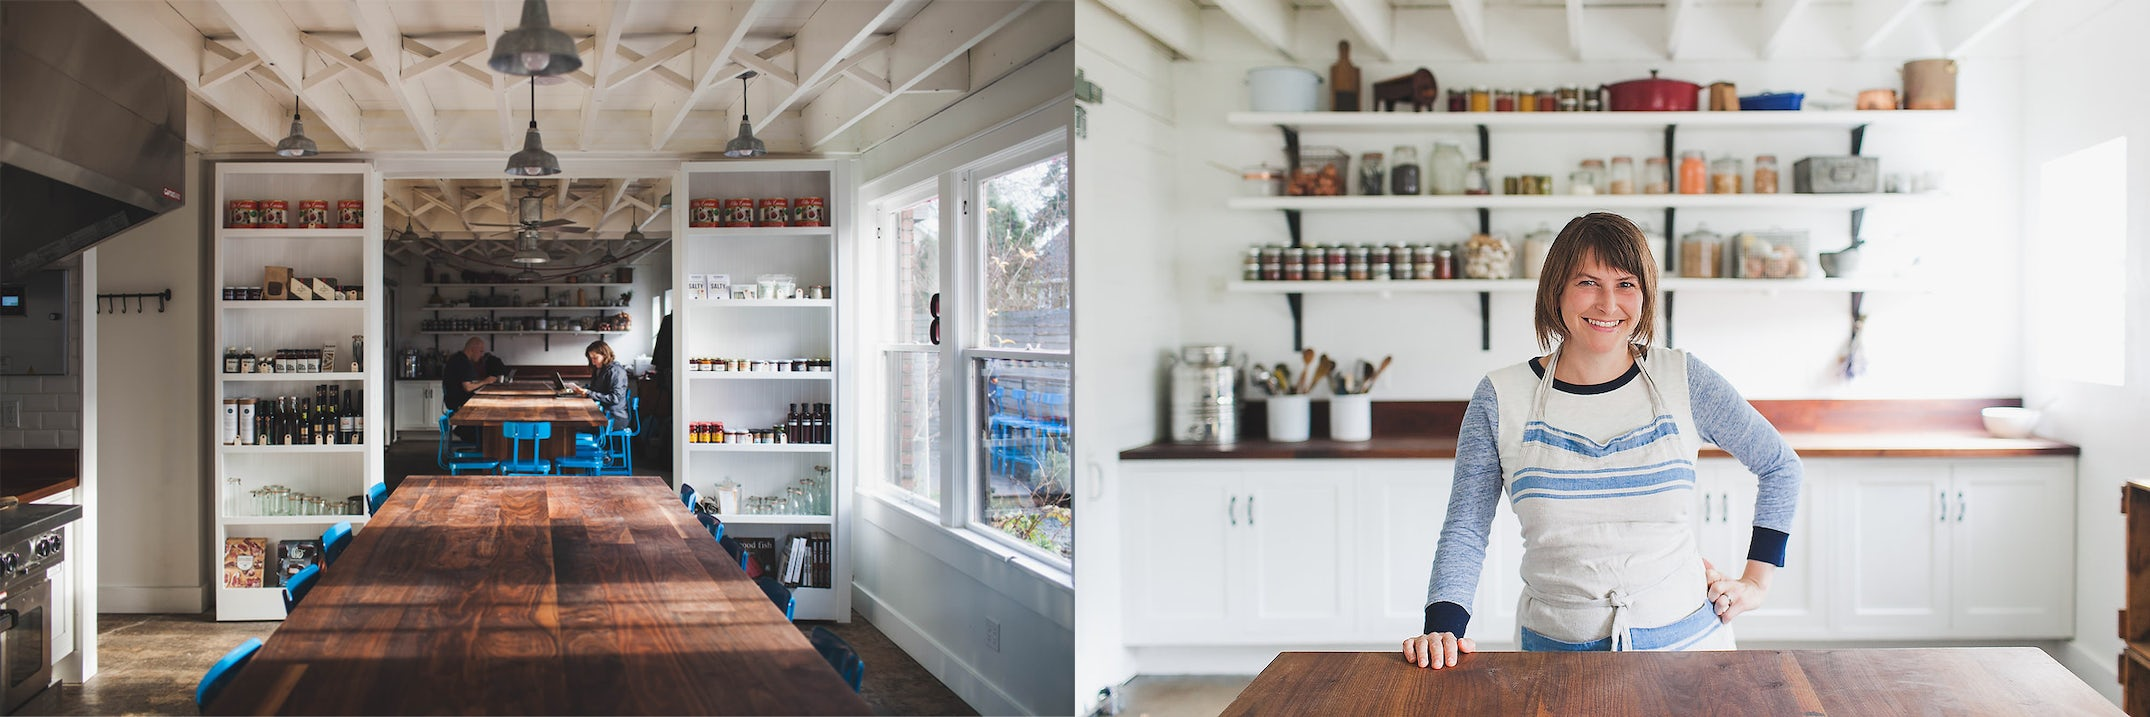 The Pantry and its Pantry-er-in-Chief, Brandi Henderson